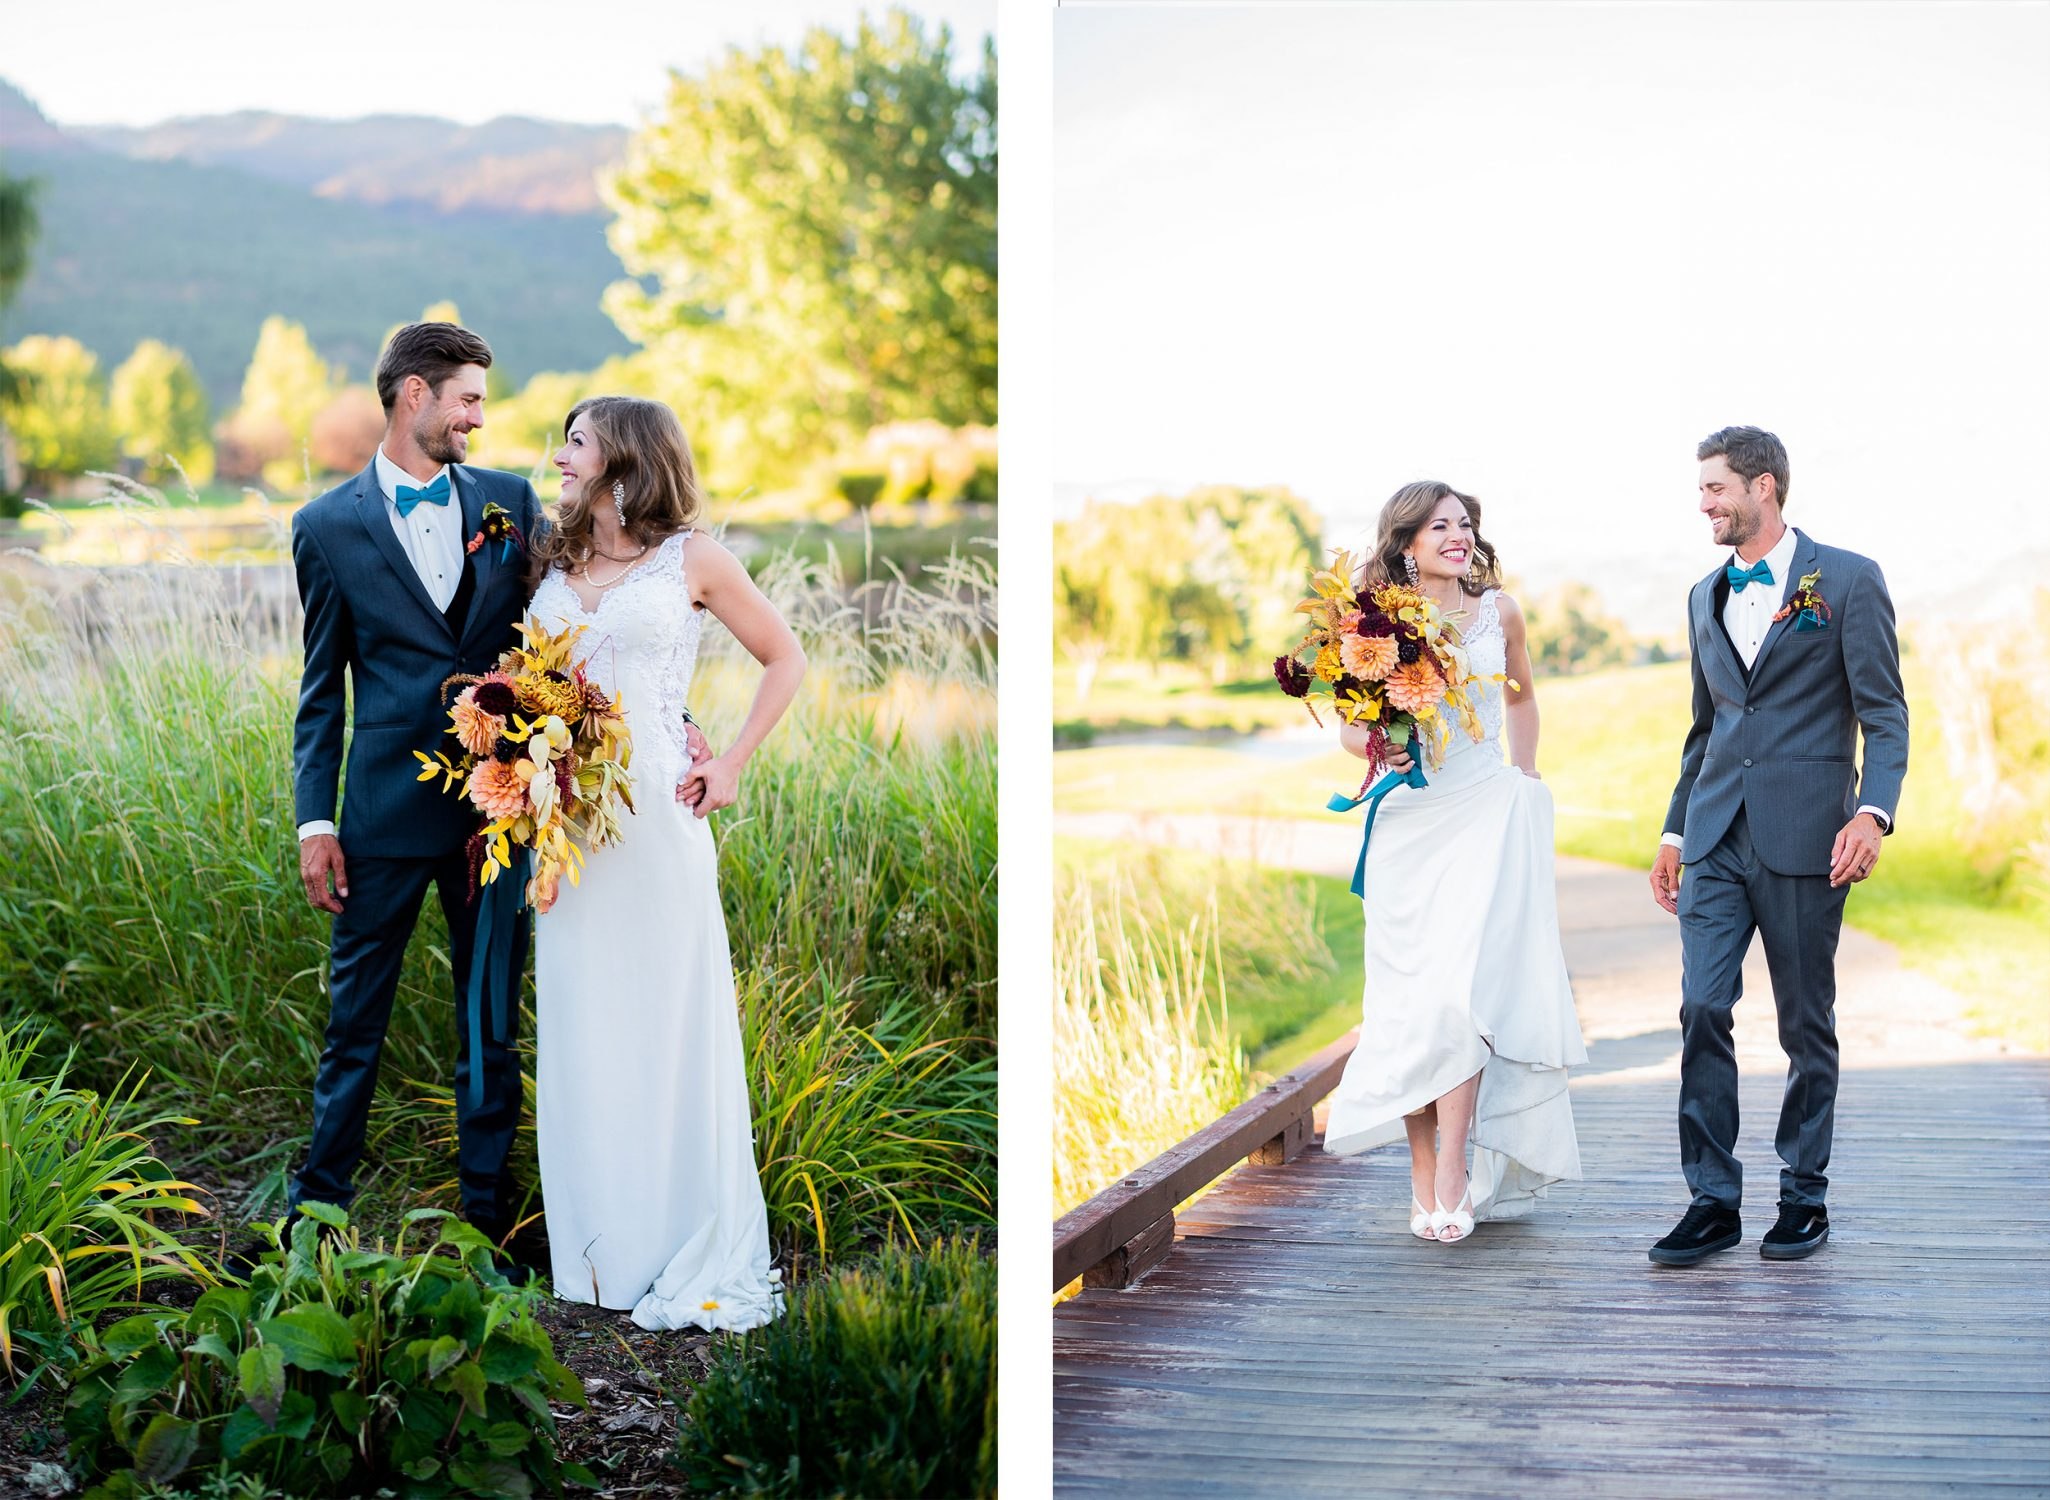 Happy Bride & Groom at Dalton Ranch Golf Club, Durango Colorado